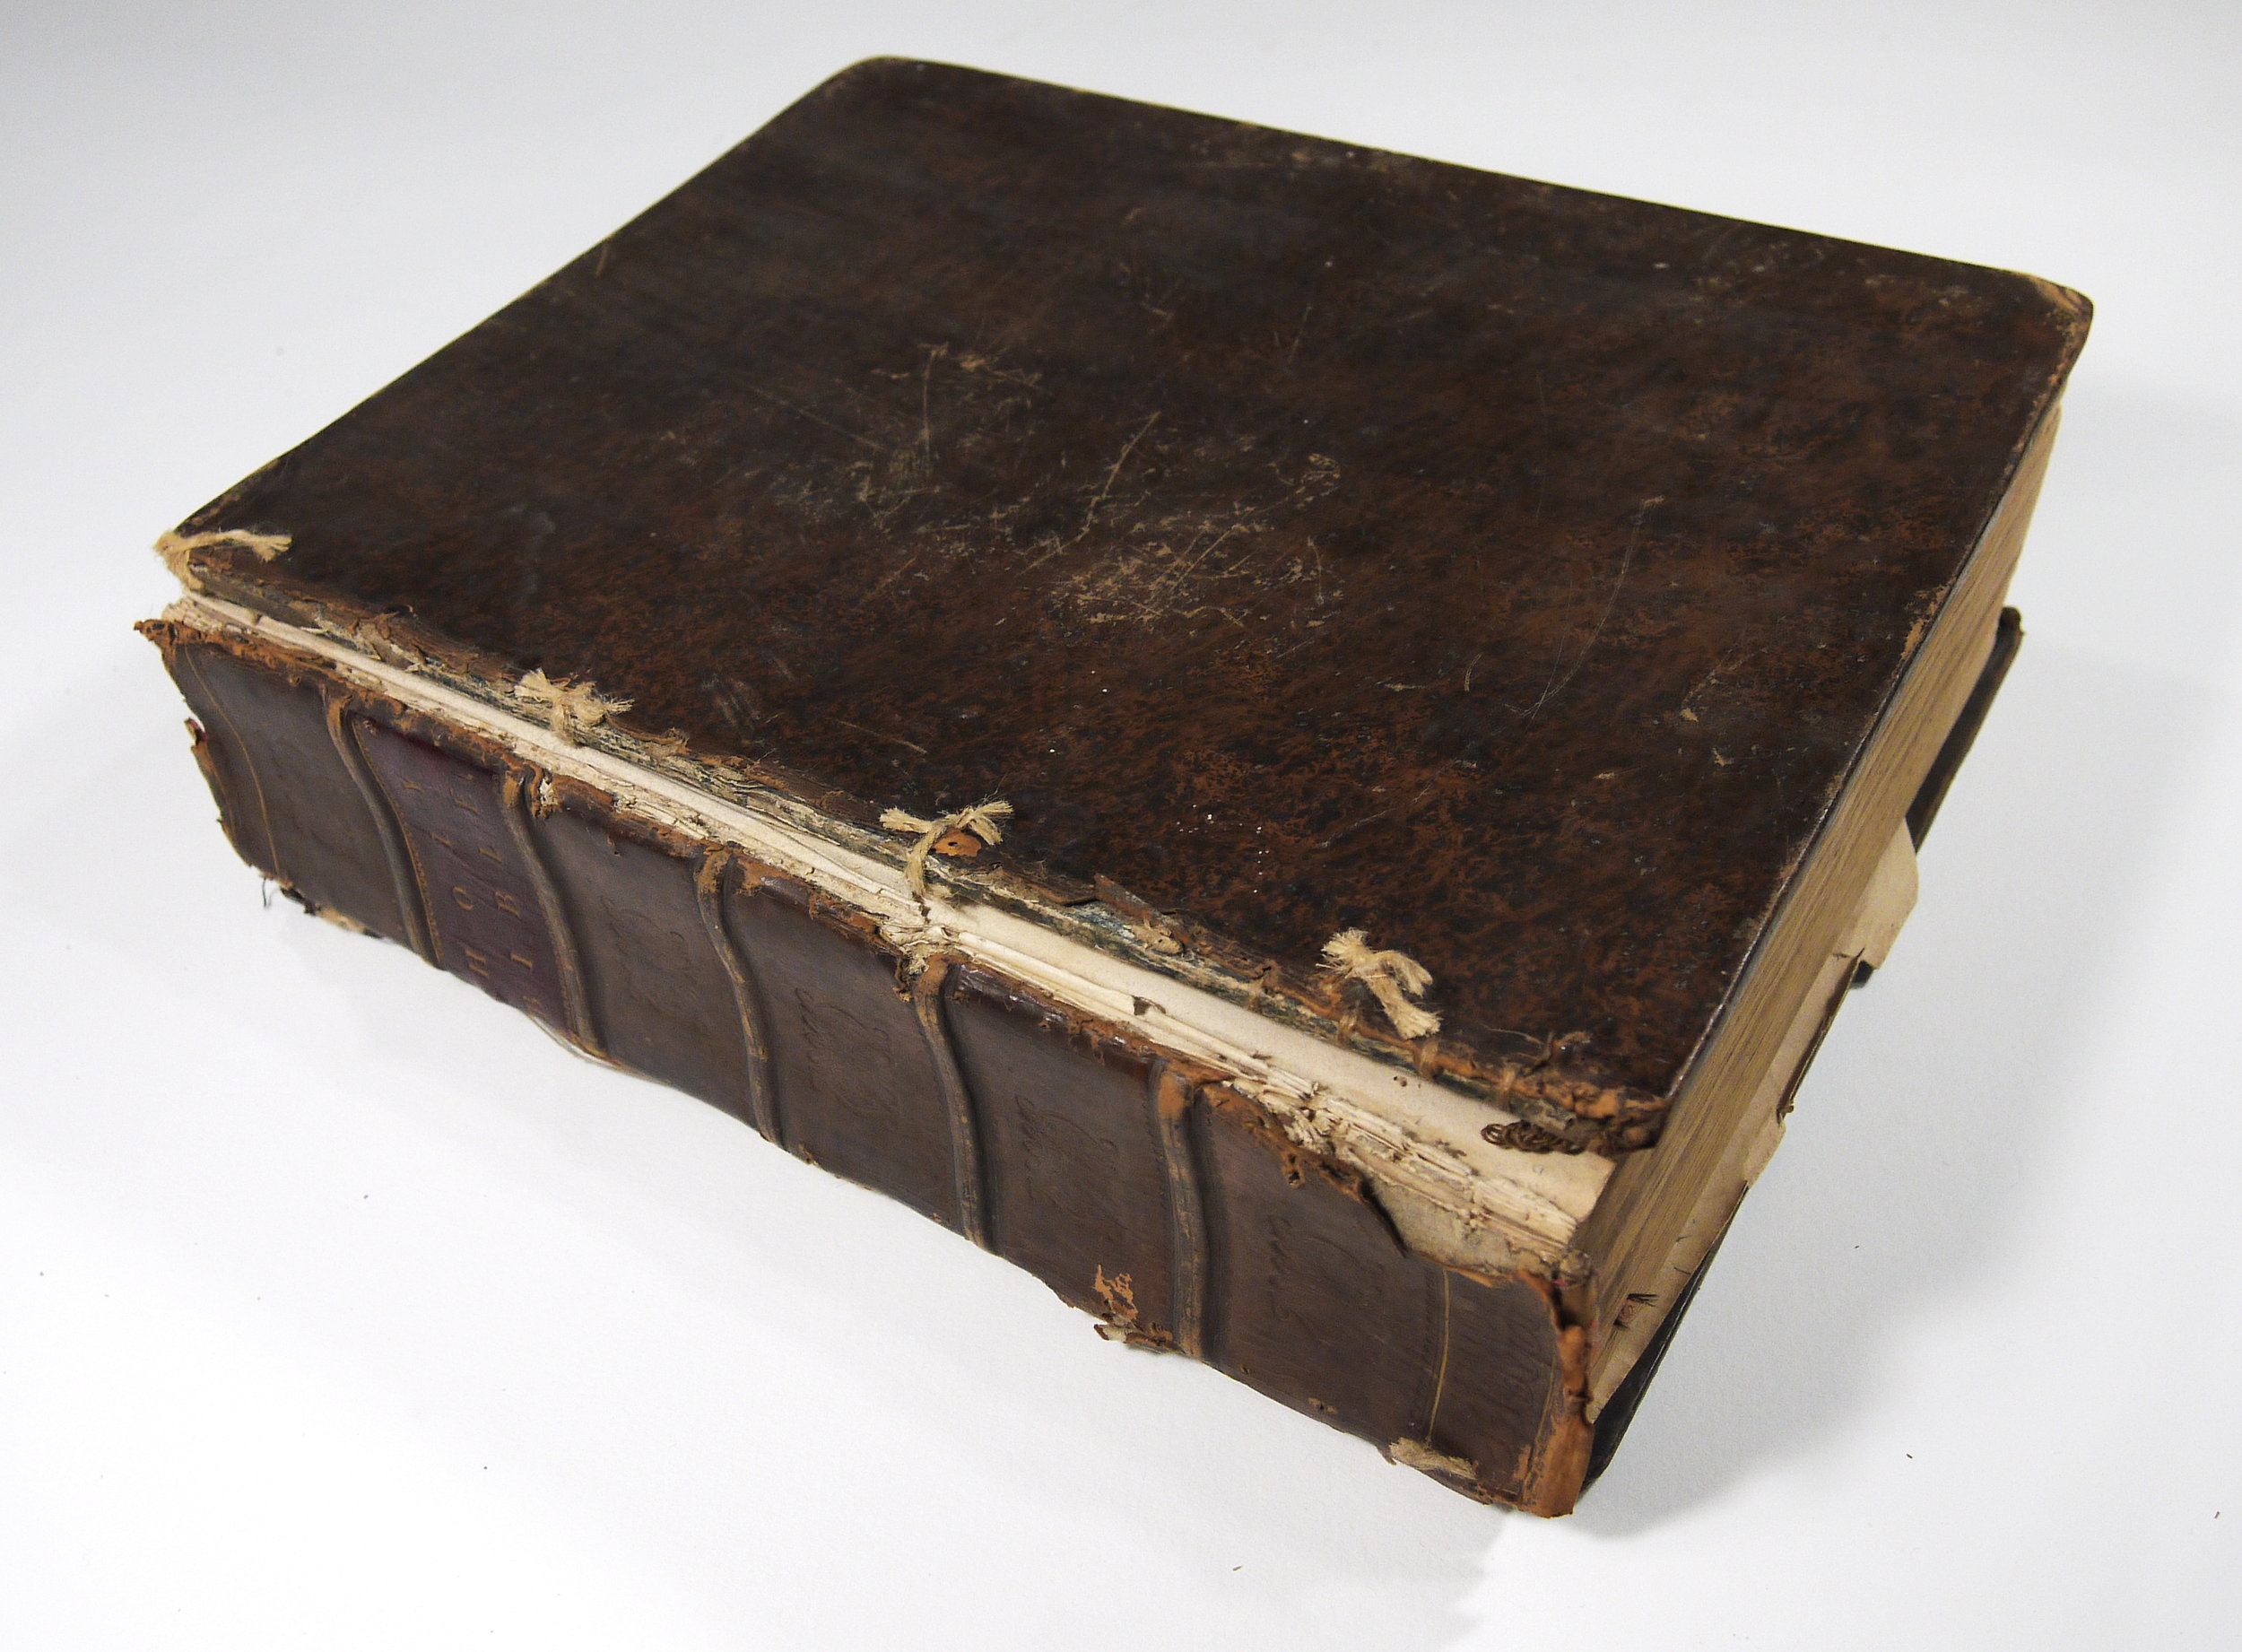 The family bible in damaged condition - boards are off, joints are ragged, and previous repairs have punctured the covers.